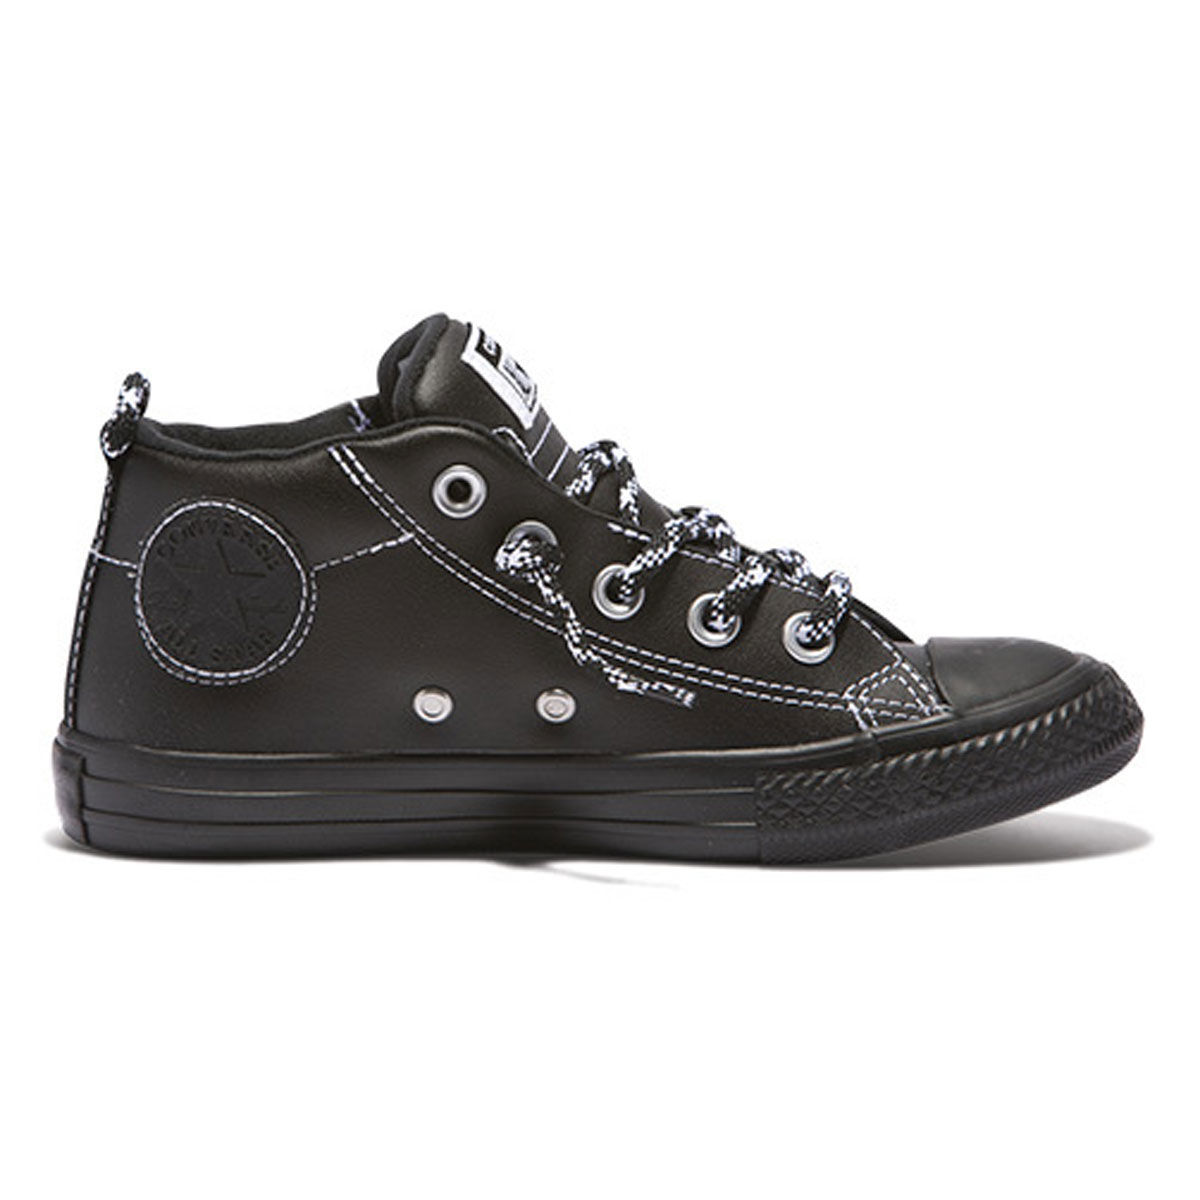 Converse Chuck Taylor All Star Street Big Kids Casual Shoe